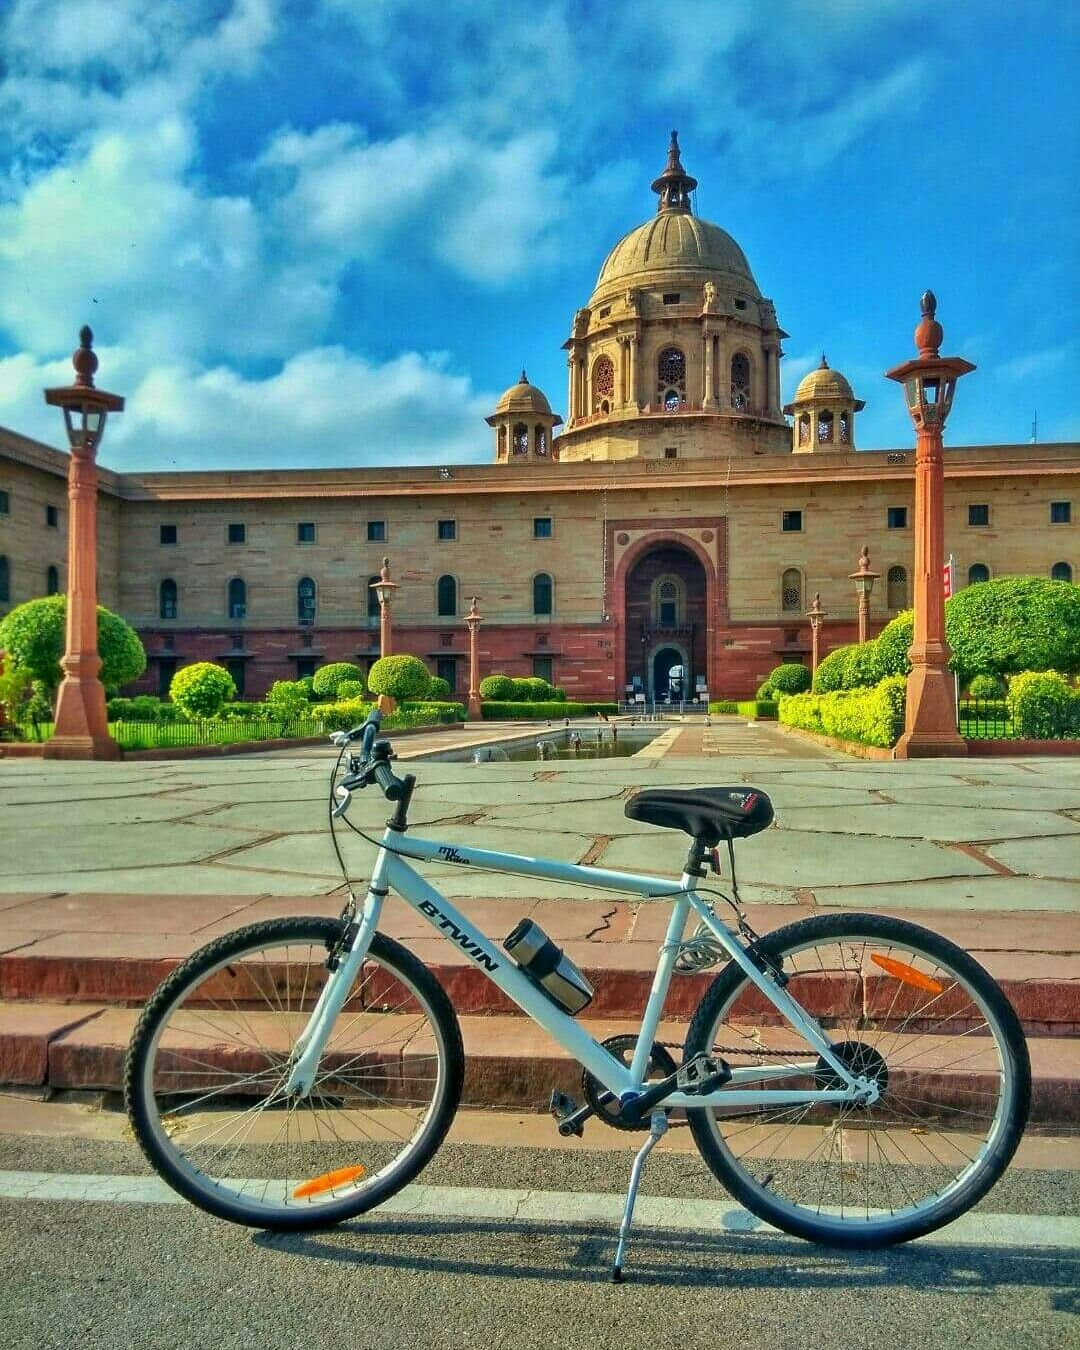 N85 Residence In New Delhi India: FOR YOU: The Rashtrapati Bhavan, Delhi! It Is The Official